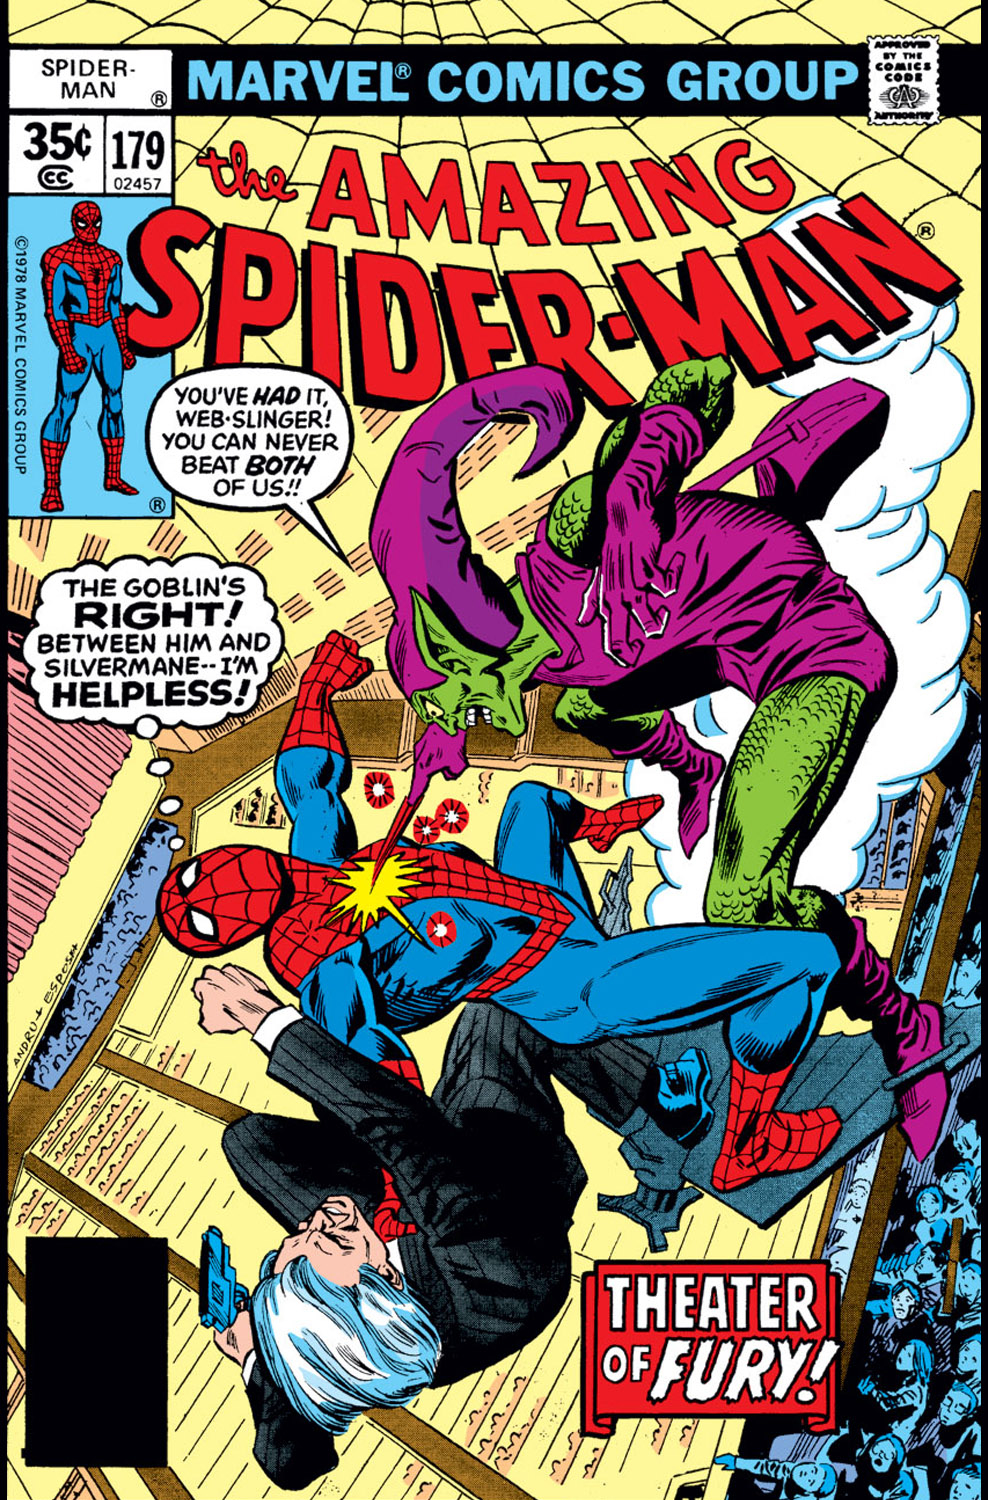 The Amazing Spider-Man (1963) 179 Page 1